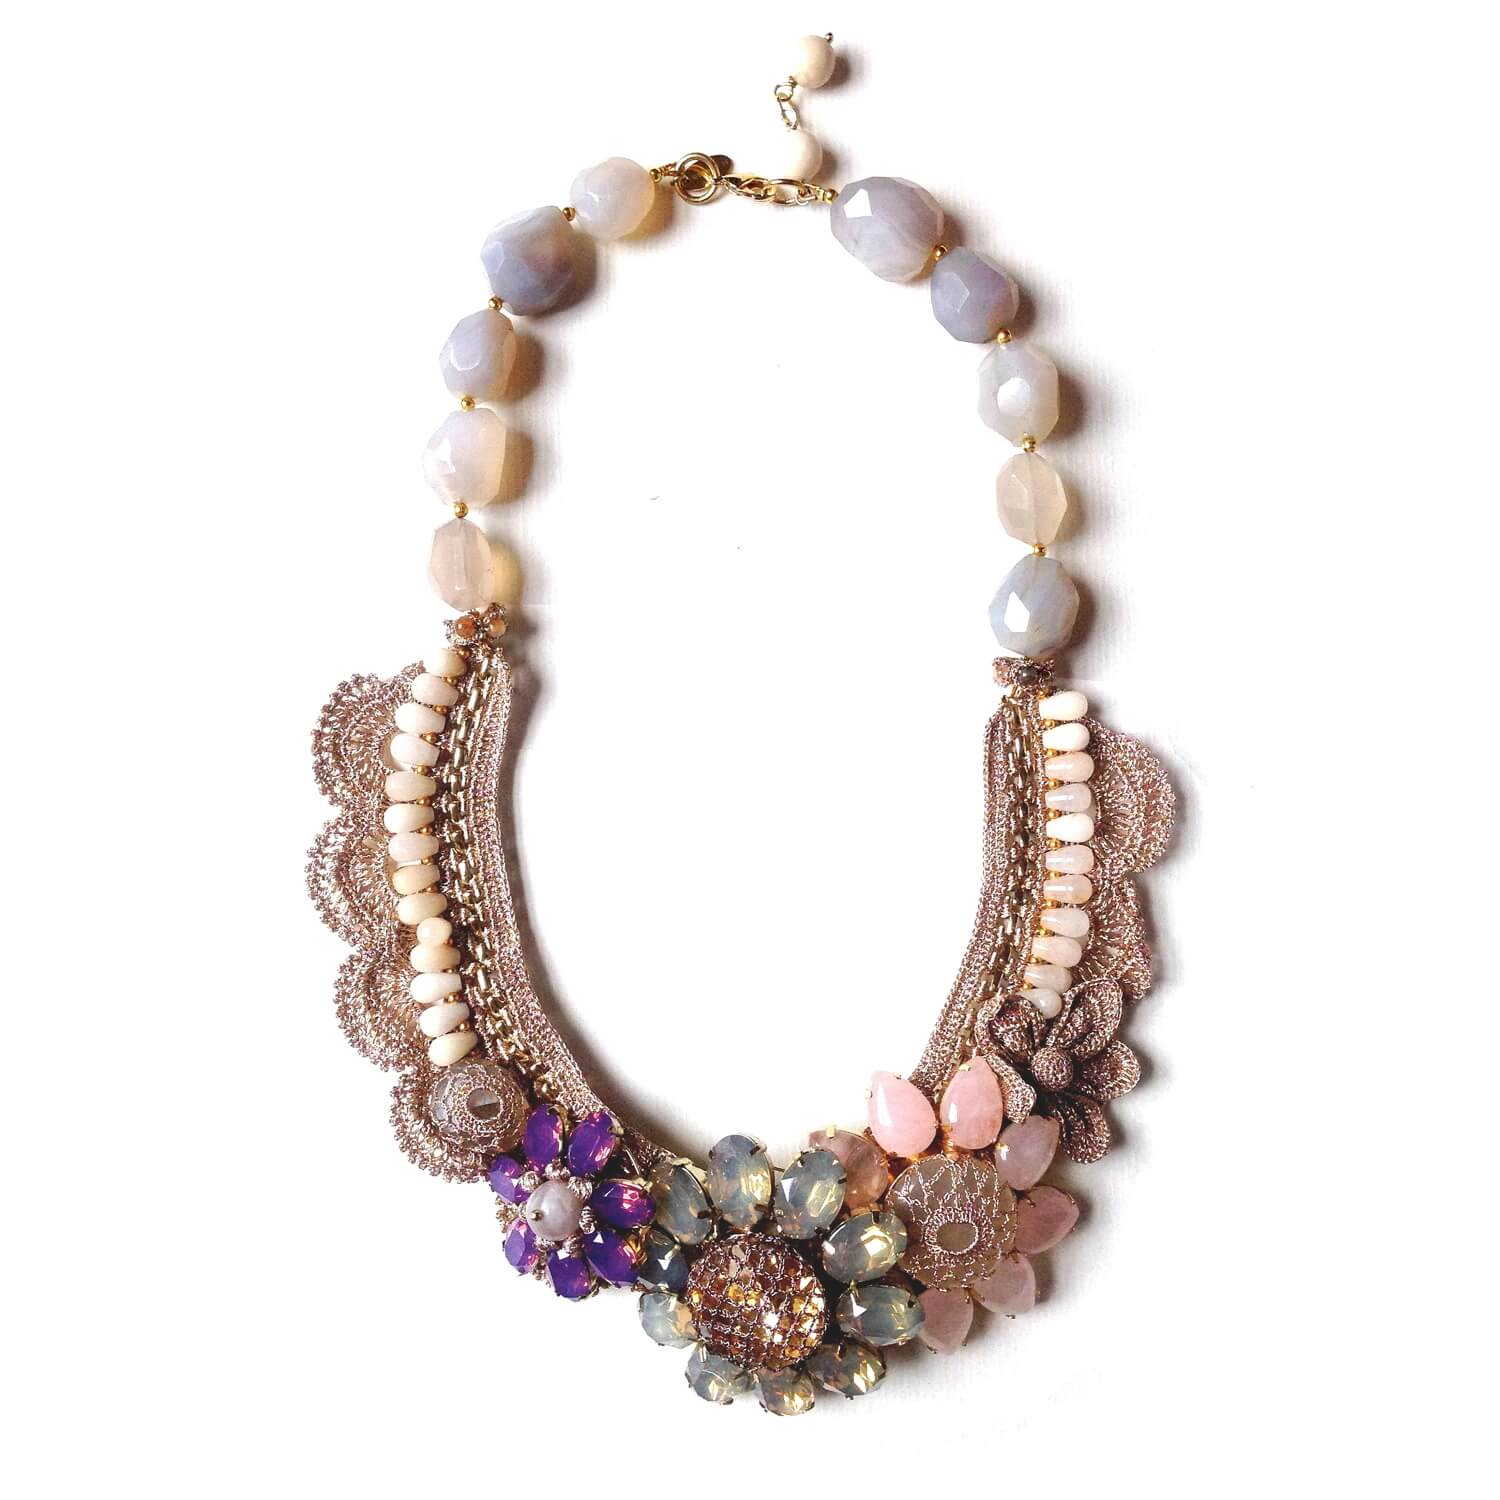 Aphrodite Quartz Forest Flower Crochet Necklace - Blush-Opal